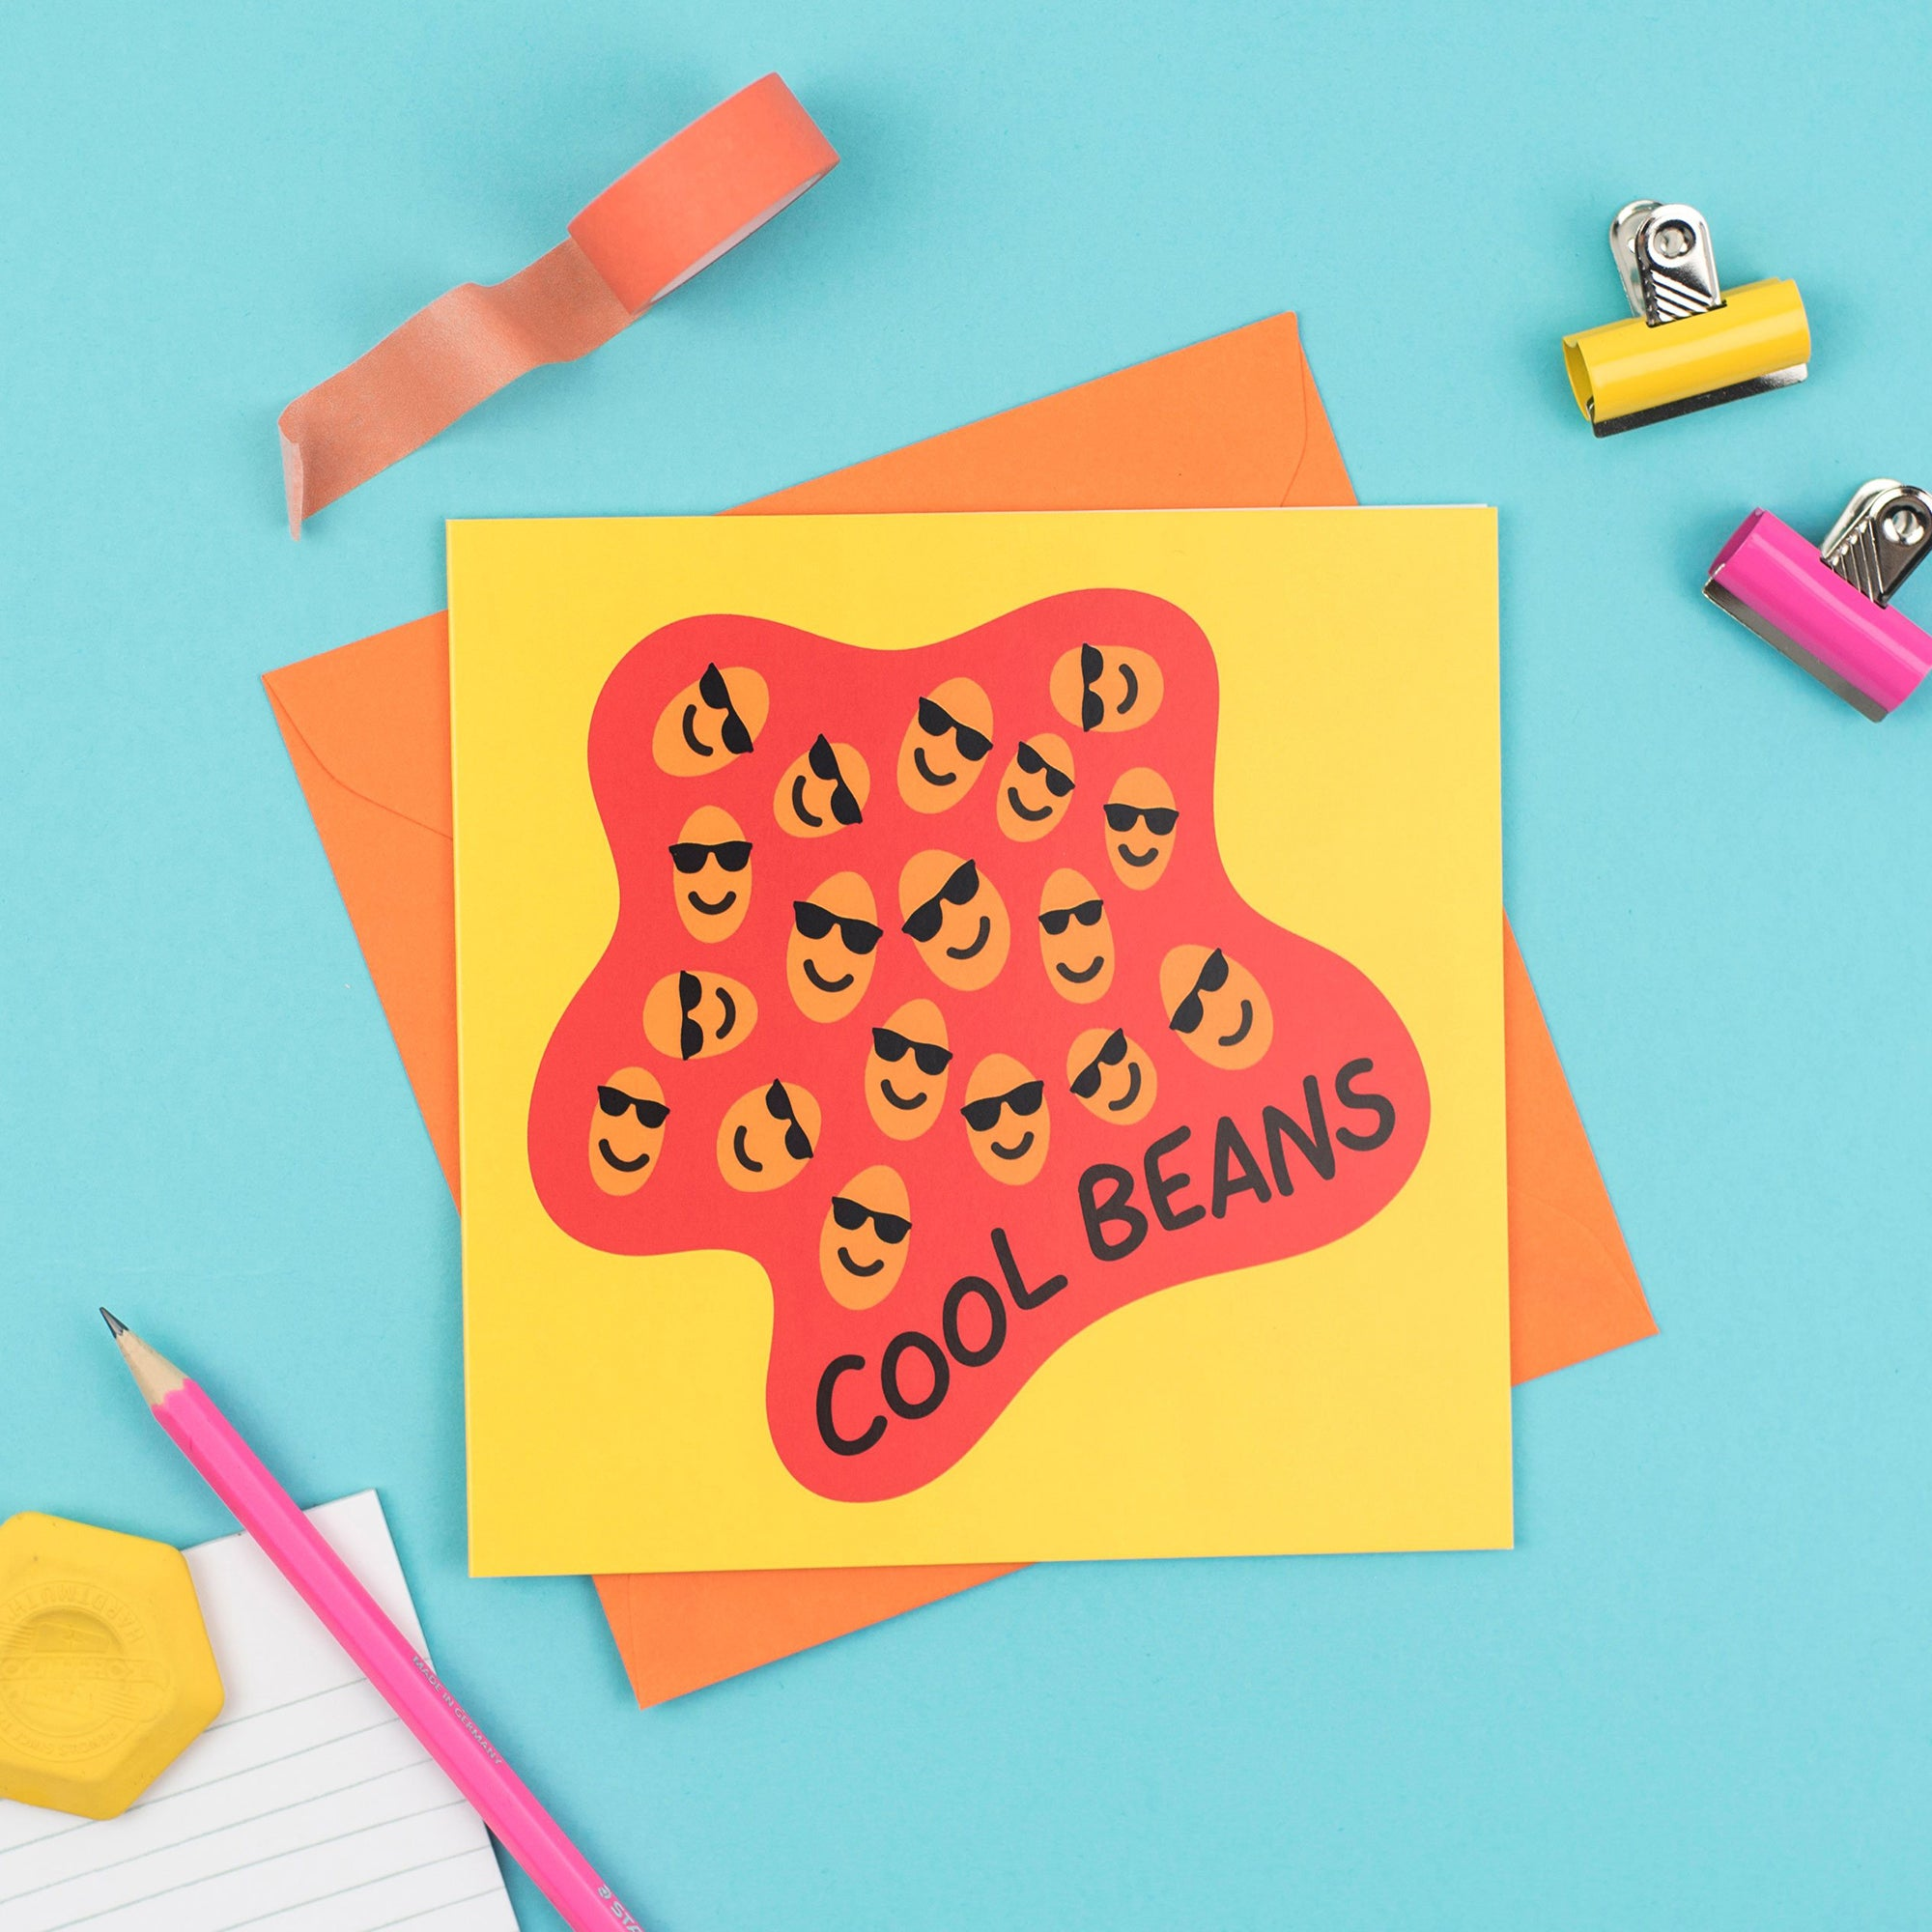 Cool Beans greetings card